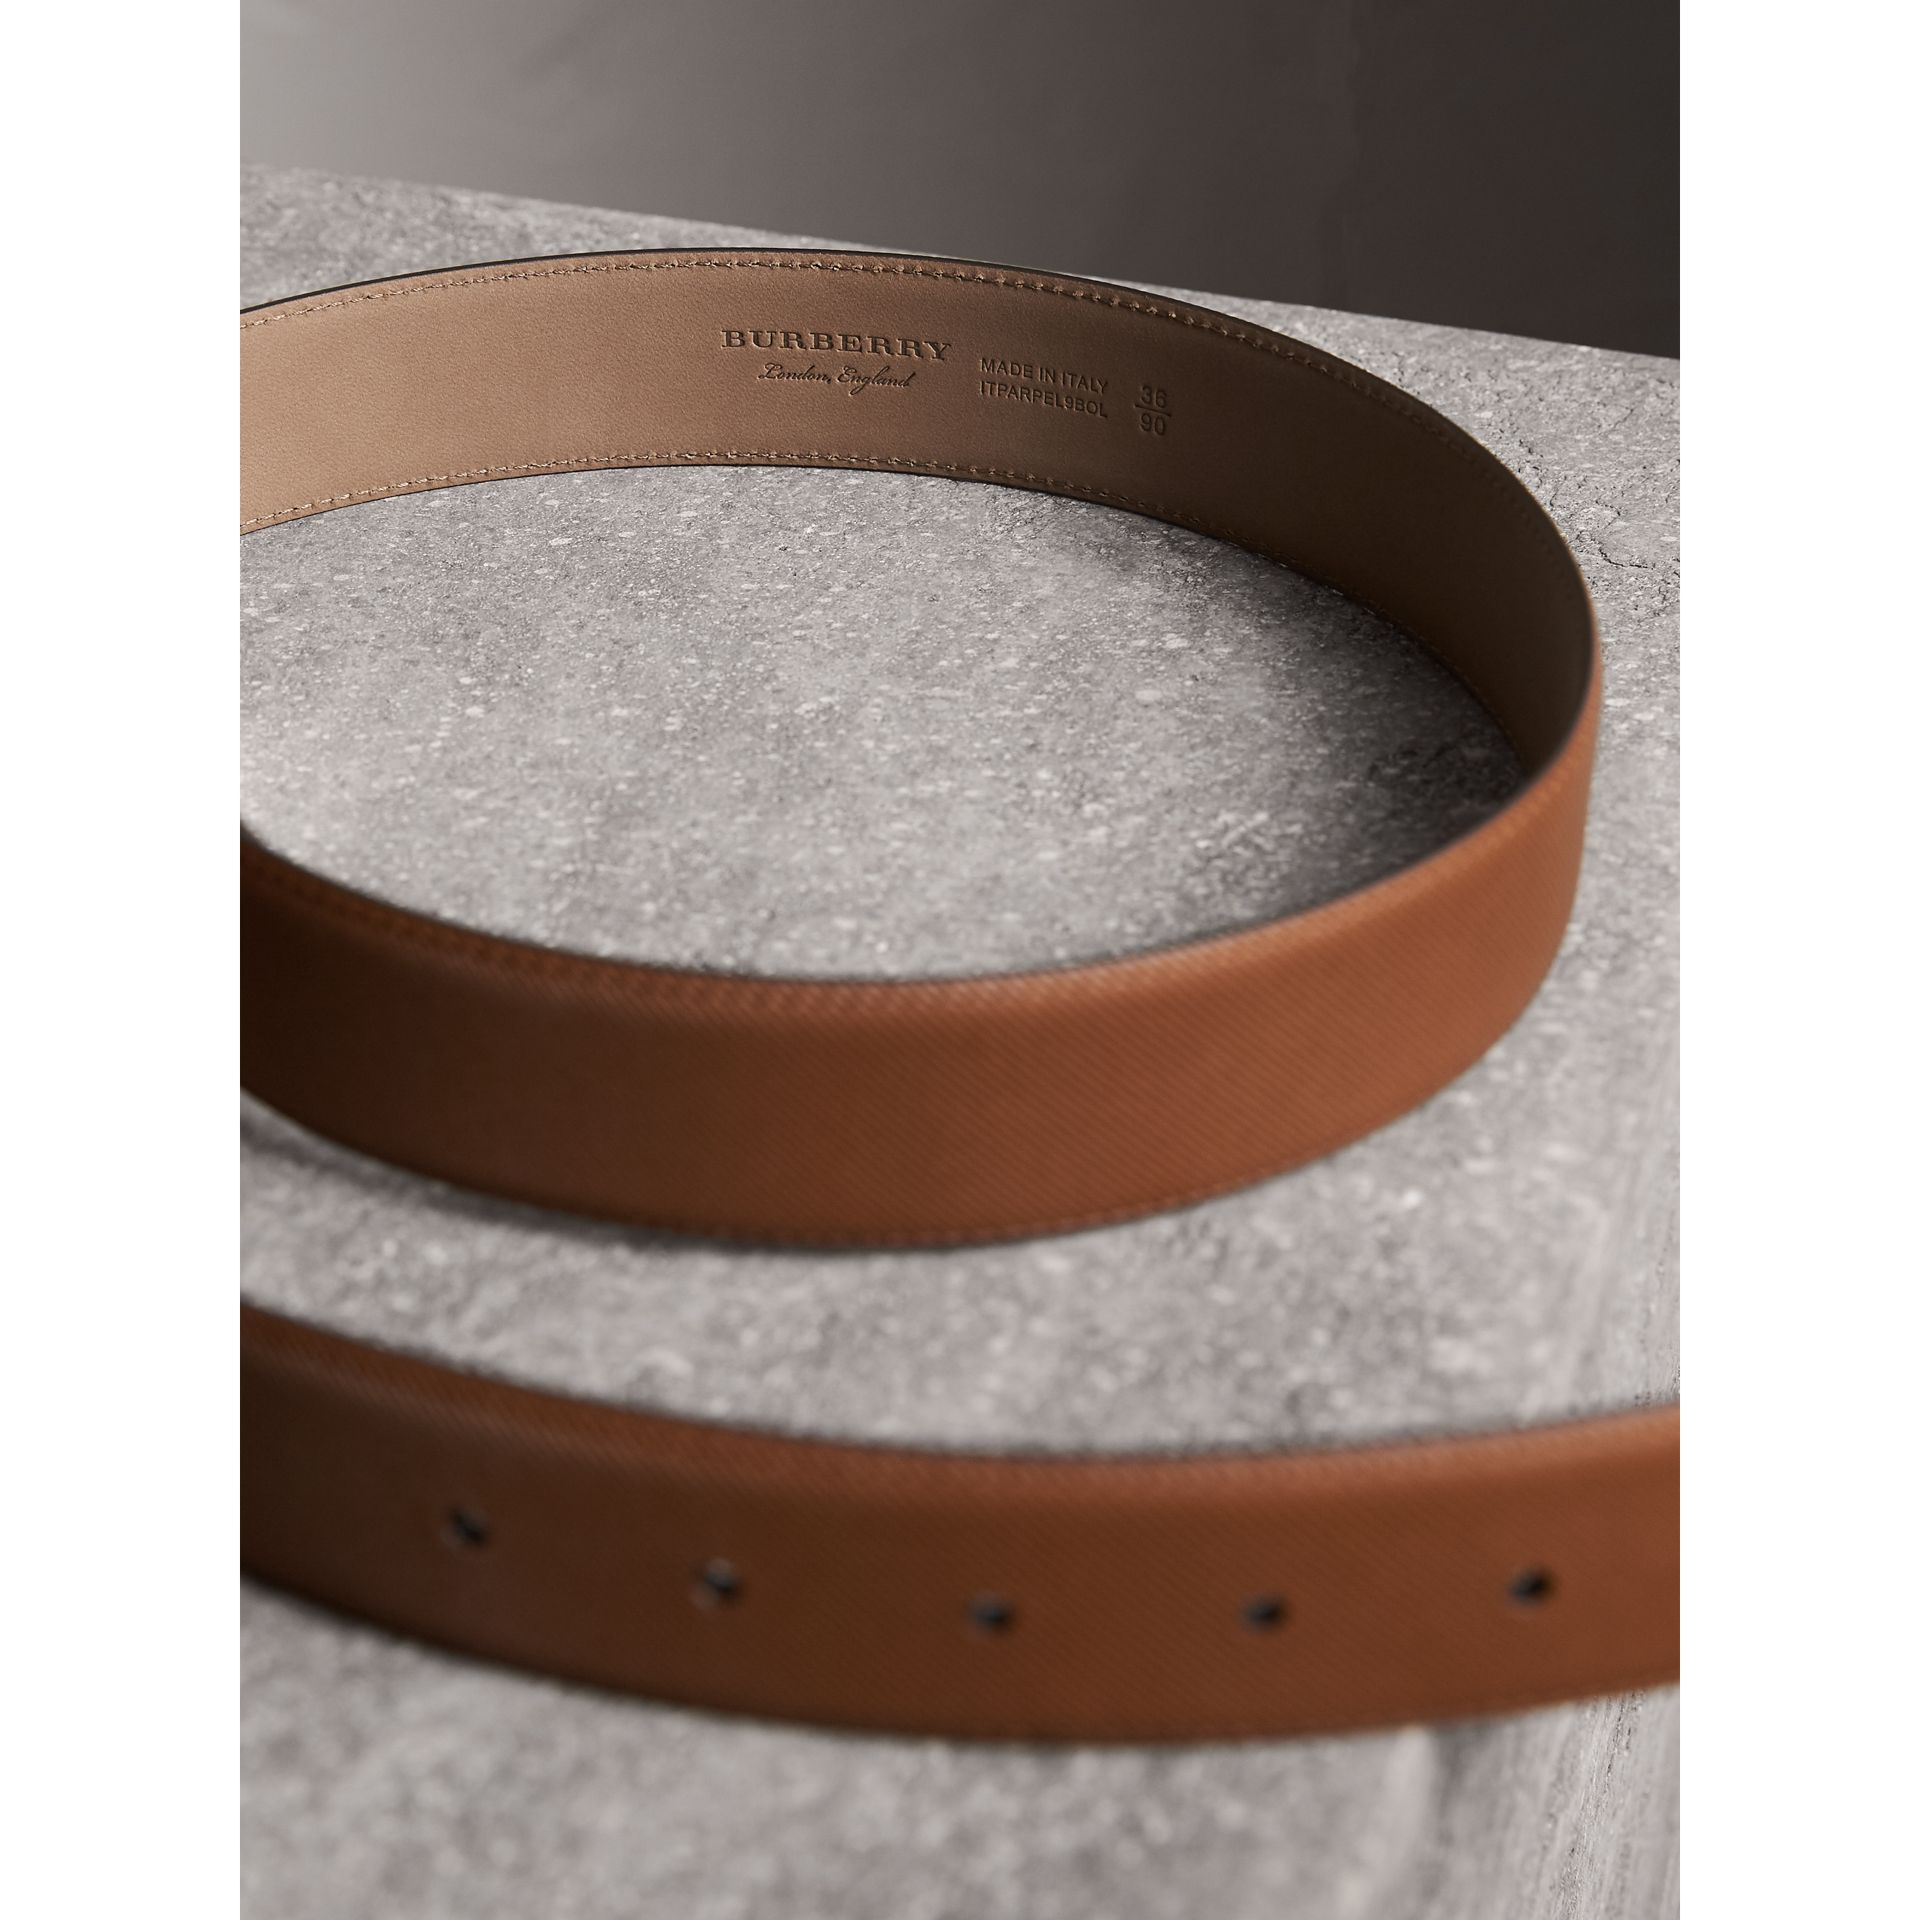 Brass Plaque Buckle Trench Leather Belt in Tan - Men | Burberry United States - gallery image 4